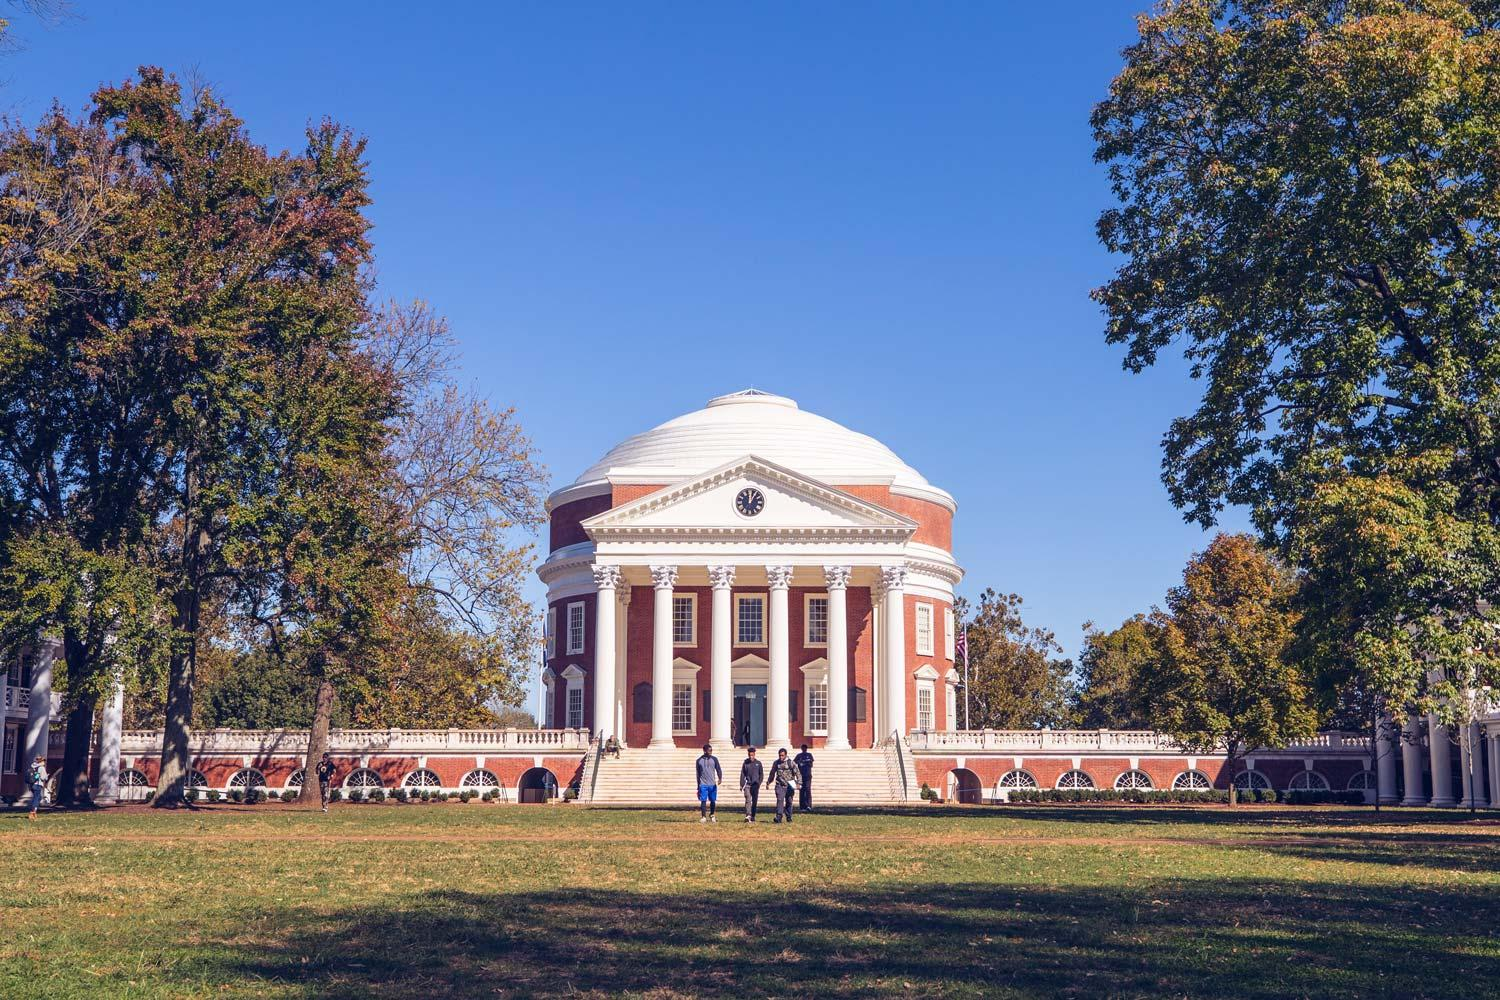 The Rotunda at the University of Virginia, on a sunny day